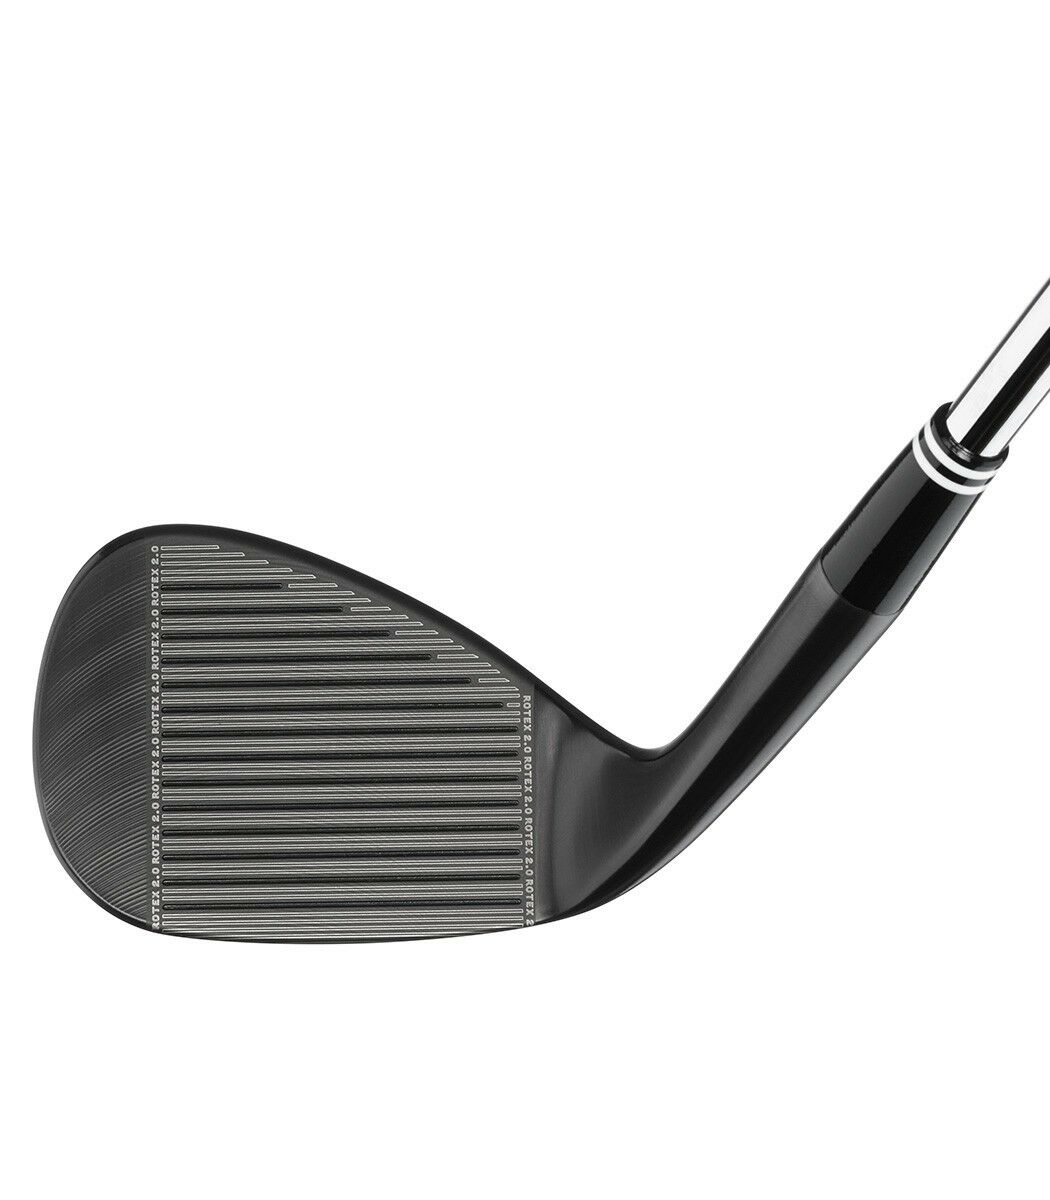 NEW CLEVELAND GOLF 588 RTX 2.0 BLACK SATIN WEDGE CHOOSE YOUR LOFT